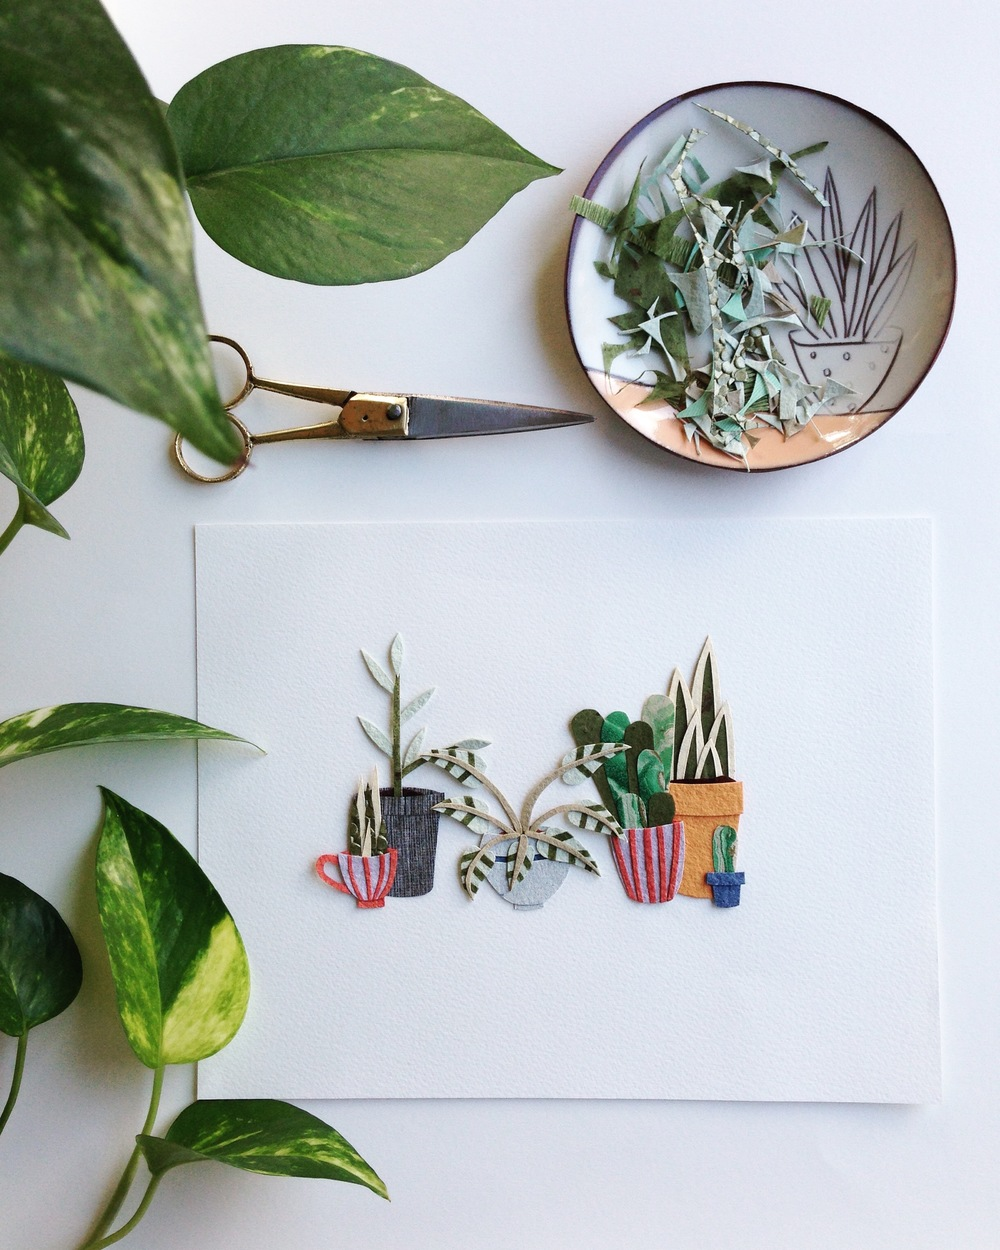 Tiny Plants Tara Galuska